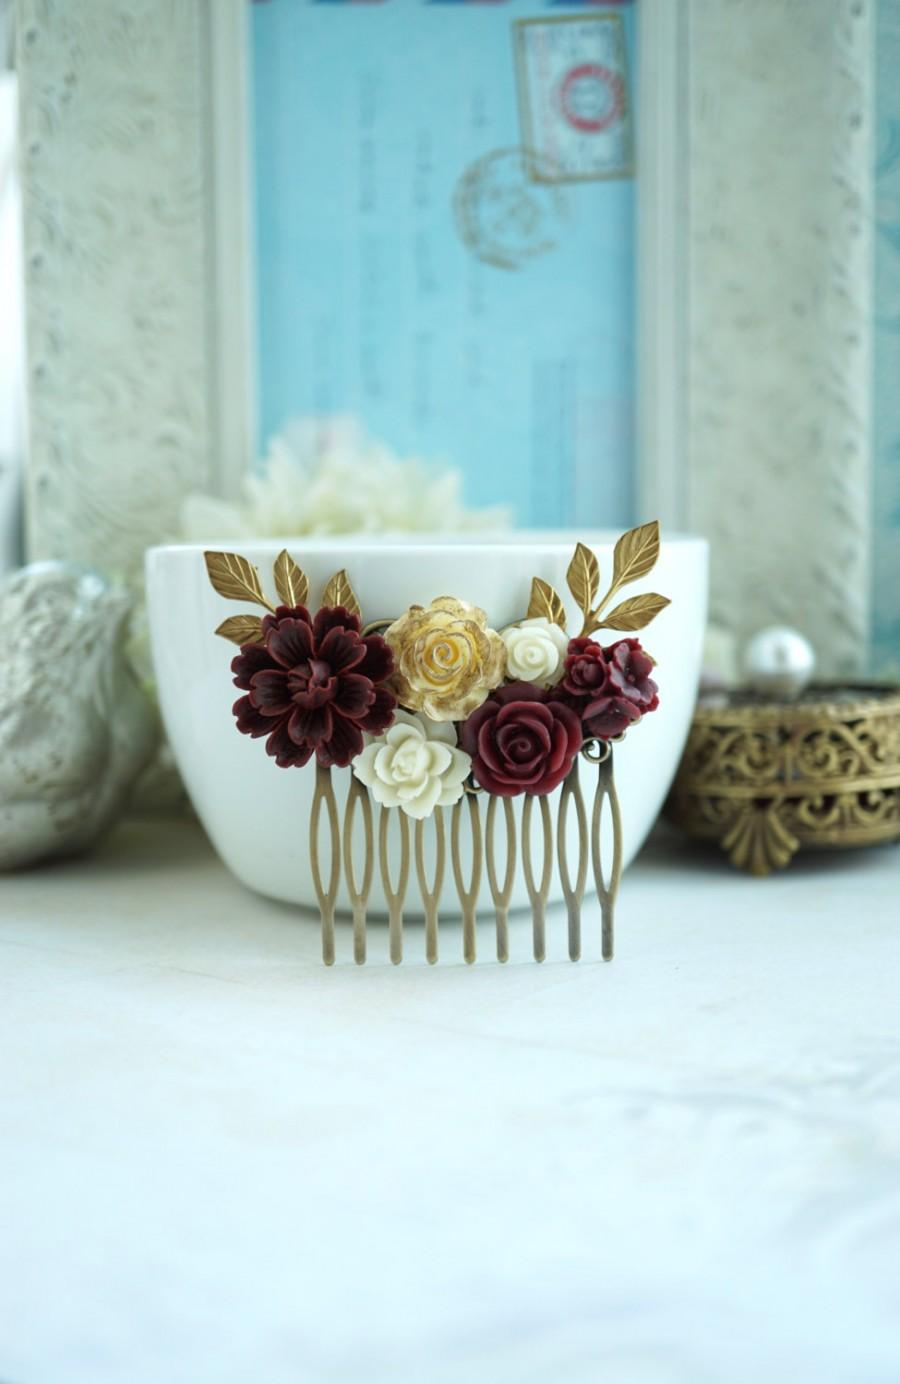 Wedding - Wedding Hair Comb, Burgundy, Ivory Shade Flowers,  Maroon Red and Gold Wedding, Masala Red Ivory Gold Rose Flower Hair Piece Bridesmaids